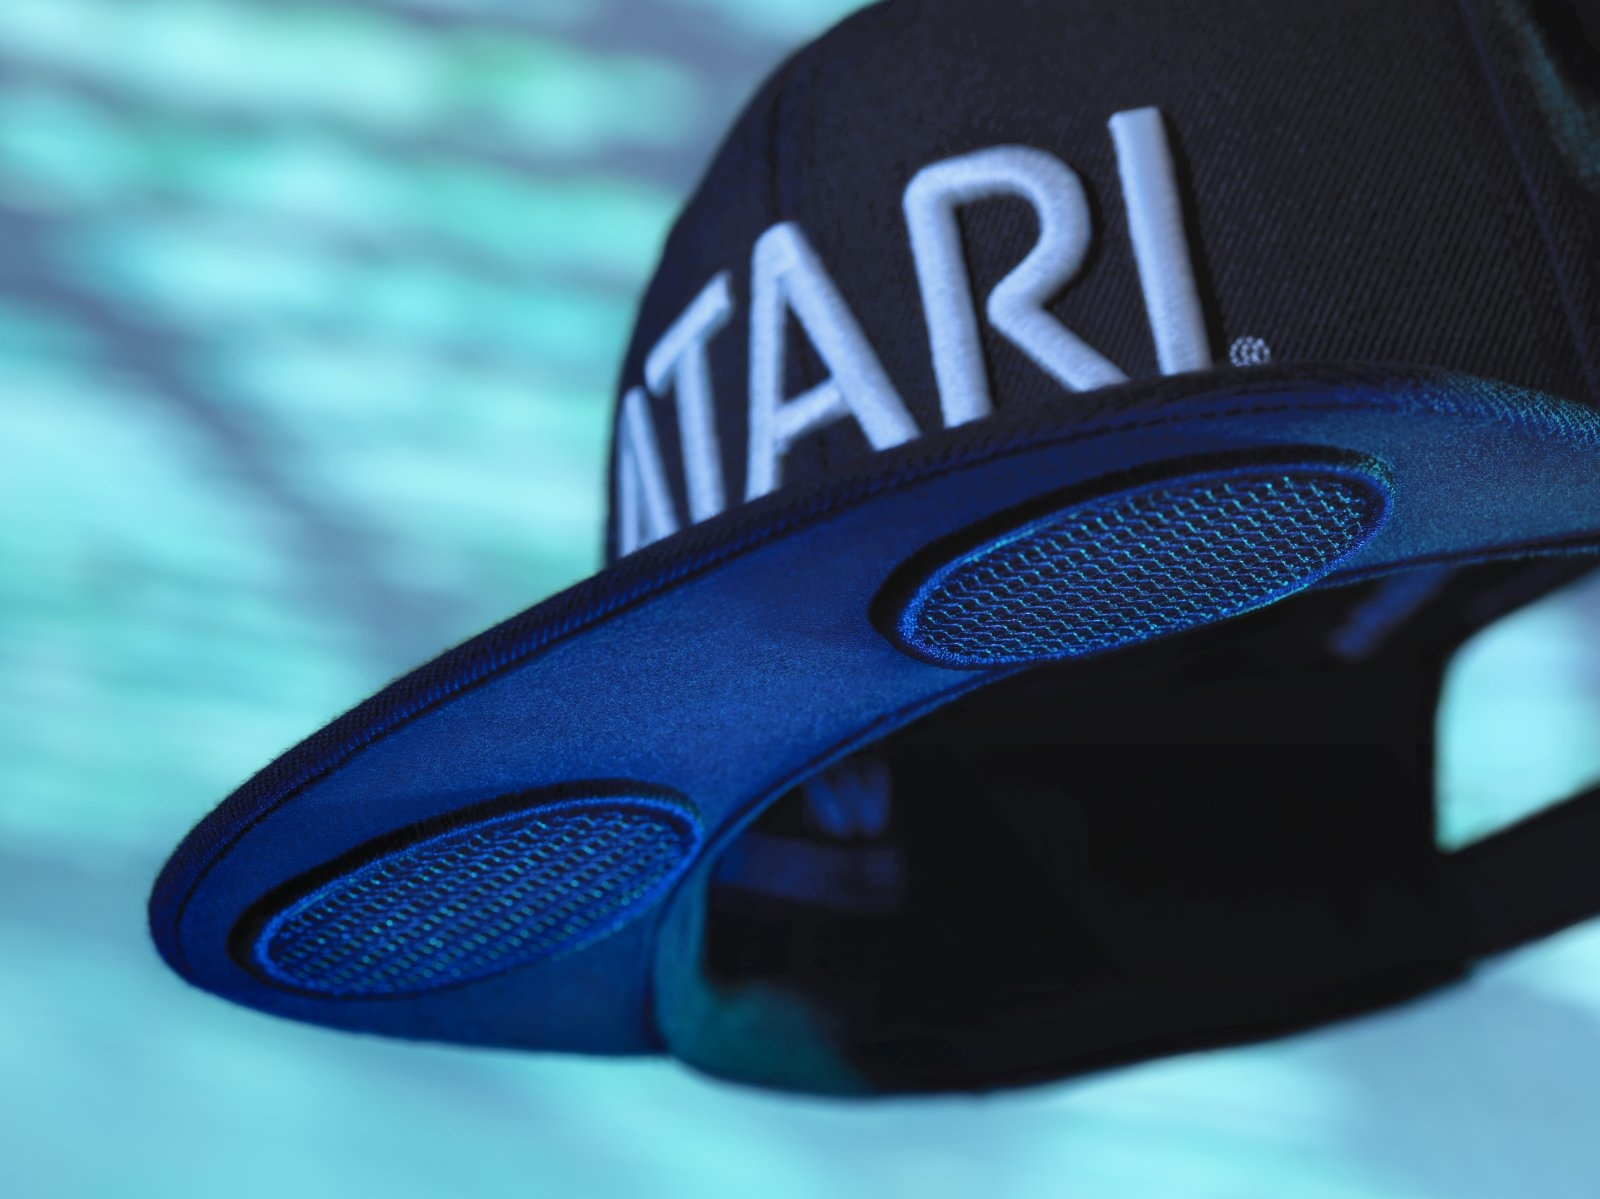 Atari's first wearable is the Speakerhat, a baseball cap with integrated speakers